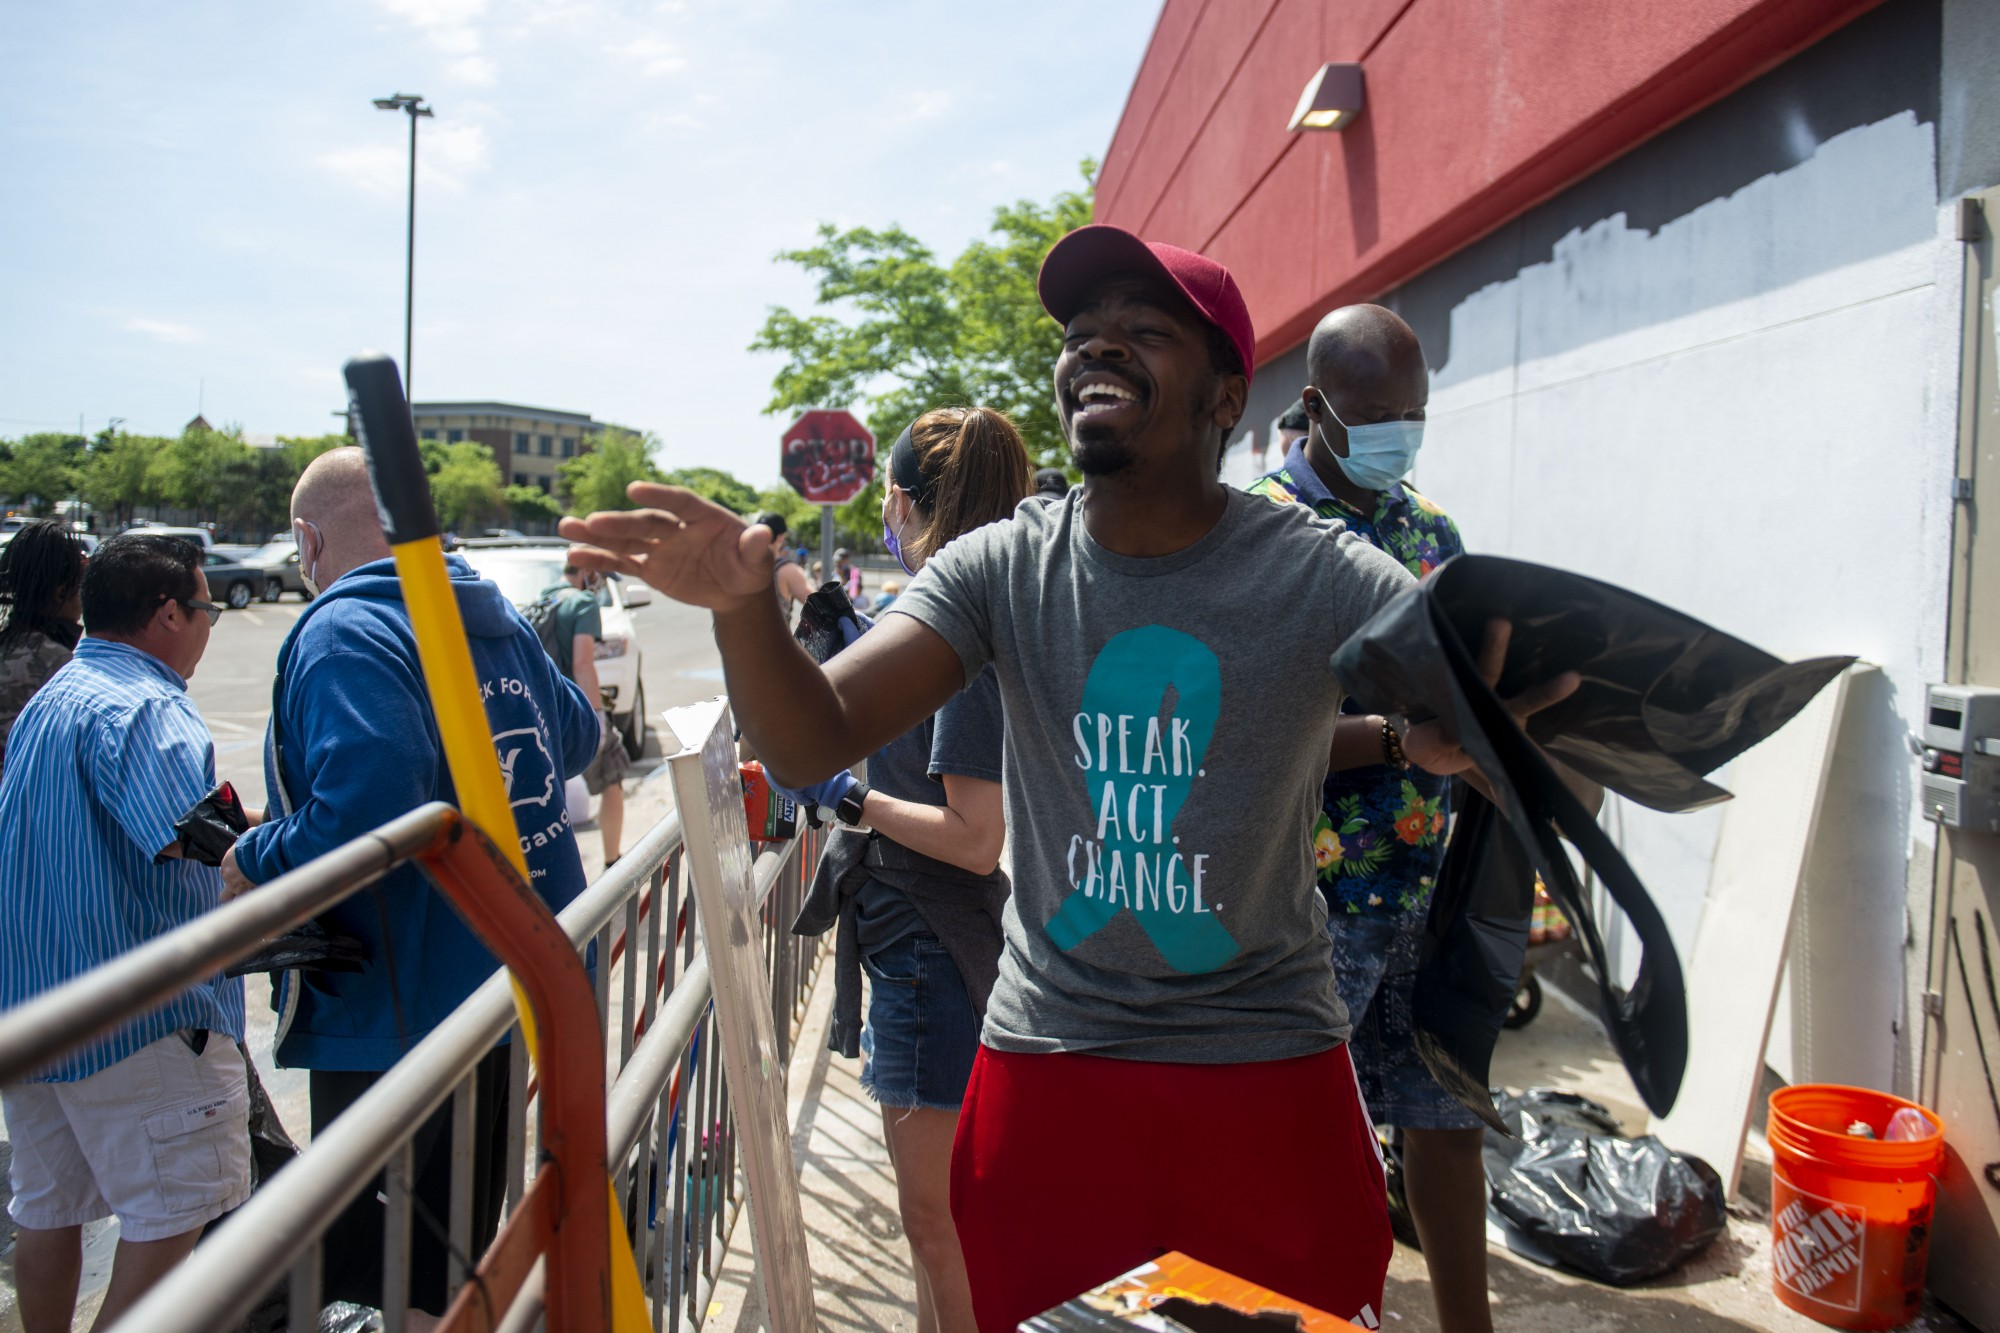 Pierre Paul, who drove to Minneapolis from Illinois, helps lead volunteers to clean up Target on Sunday, May 31. The goods were then donated to local non-profits and churches.